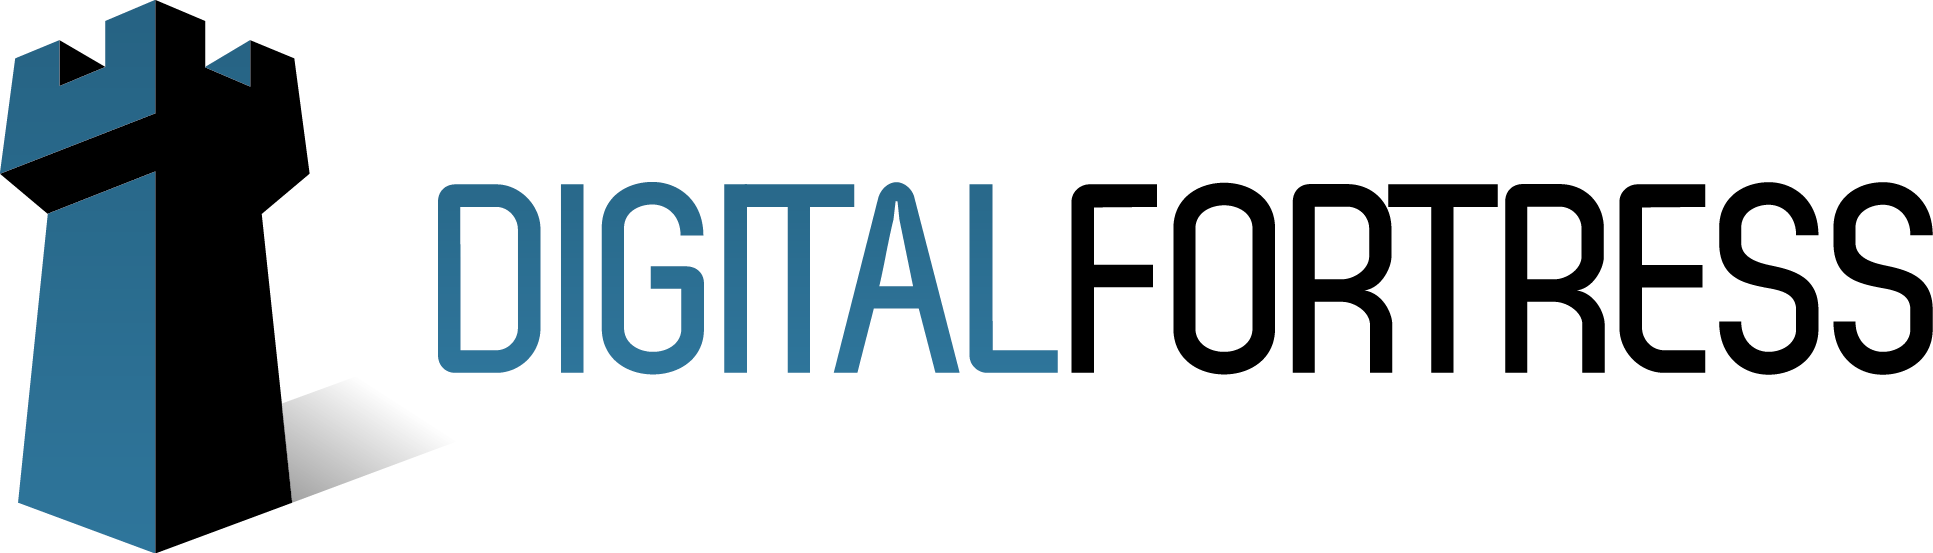 Digital Fortress Announces New CEO